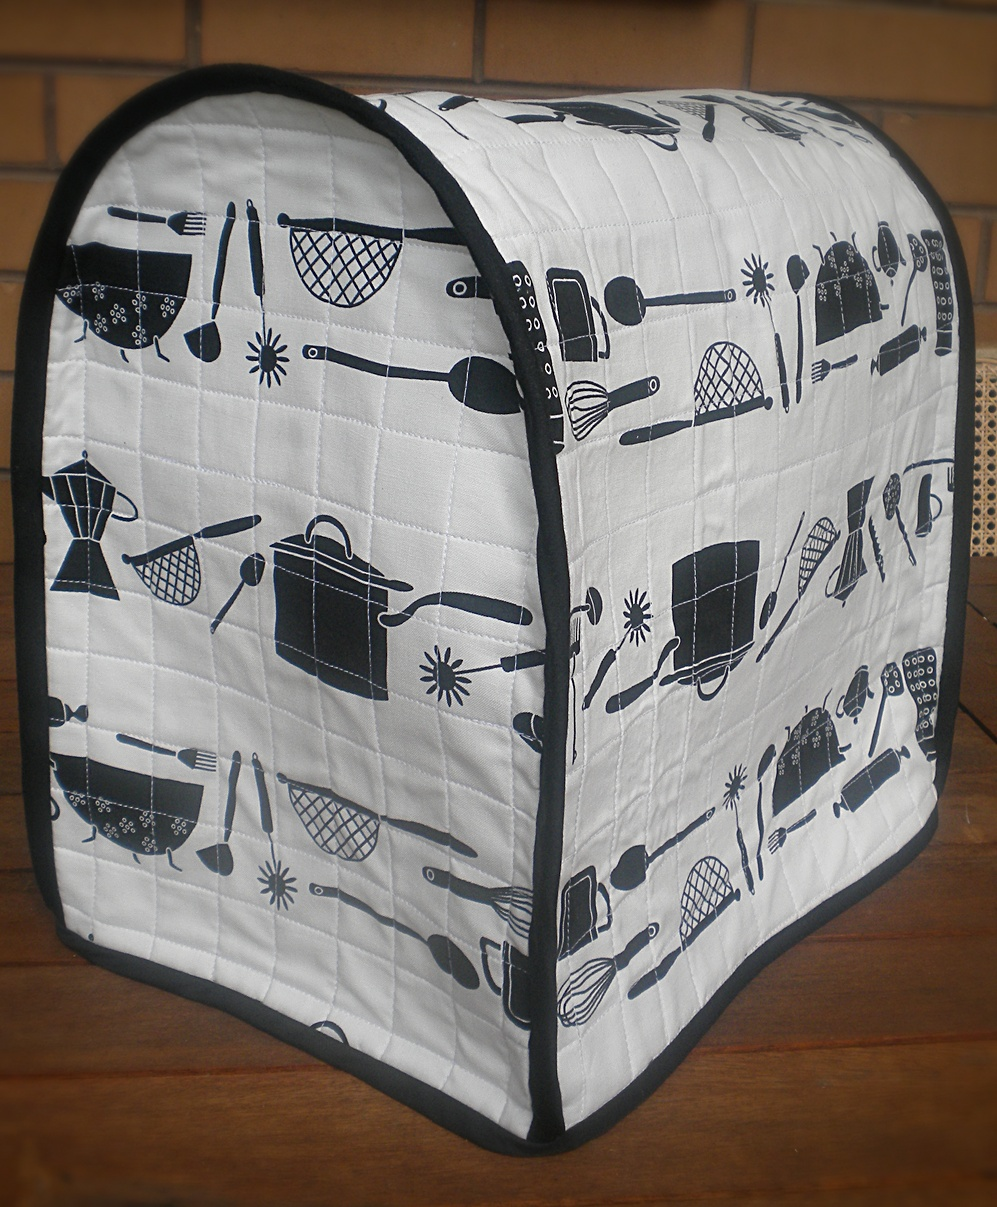 Kitchenaid Stand Mixer Cover Pattern : kitchenaid, stand, mixer, cover, pattern, Heart, Mary:, Tutorial:, KitchenAid, Mixer, Cover